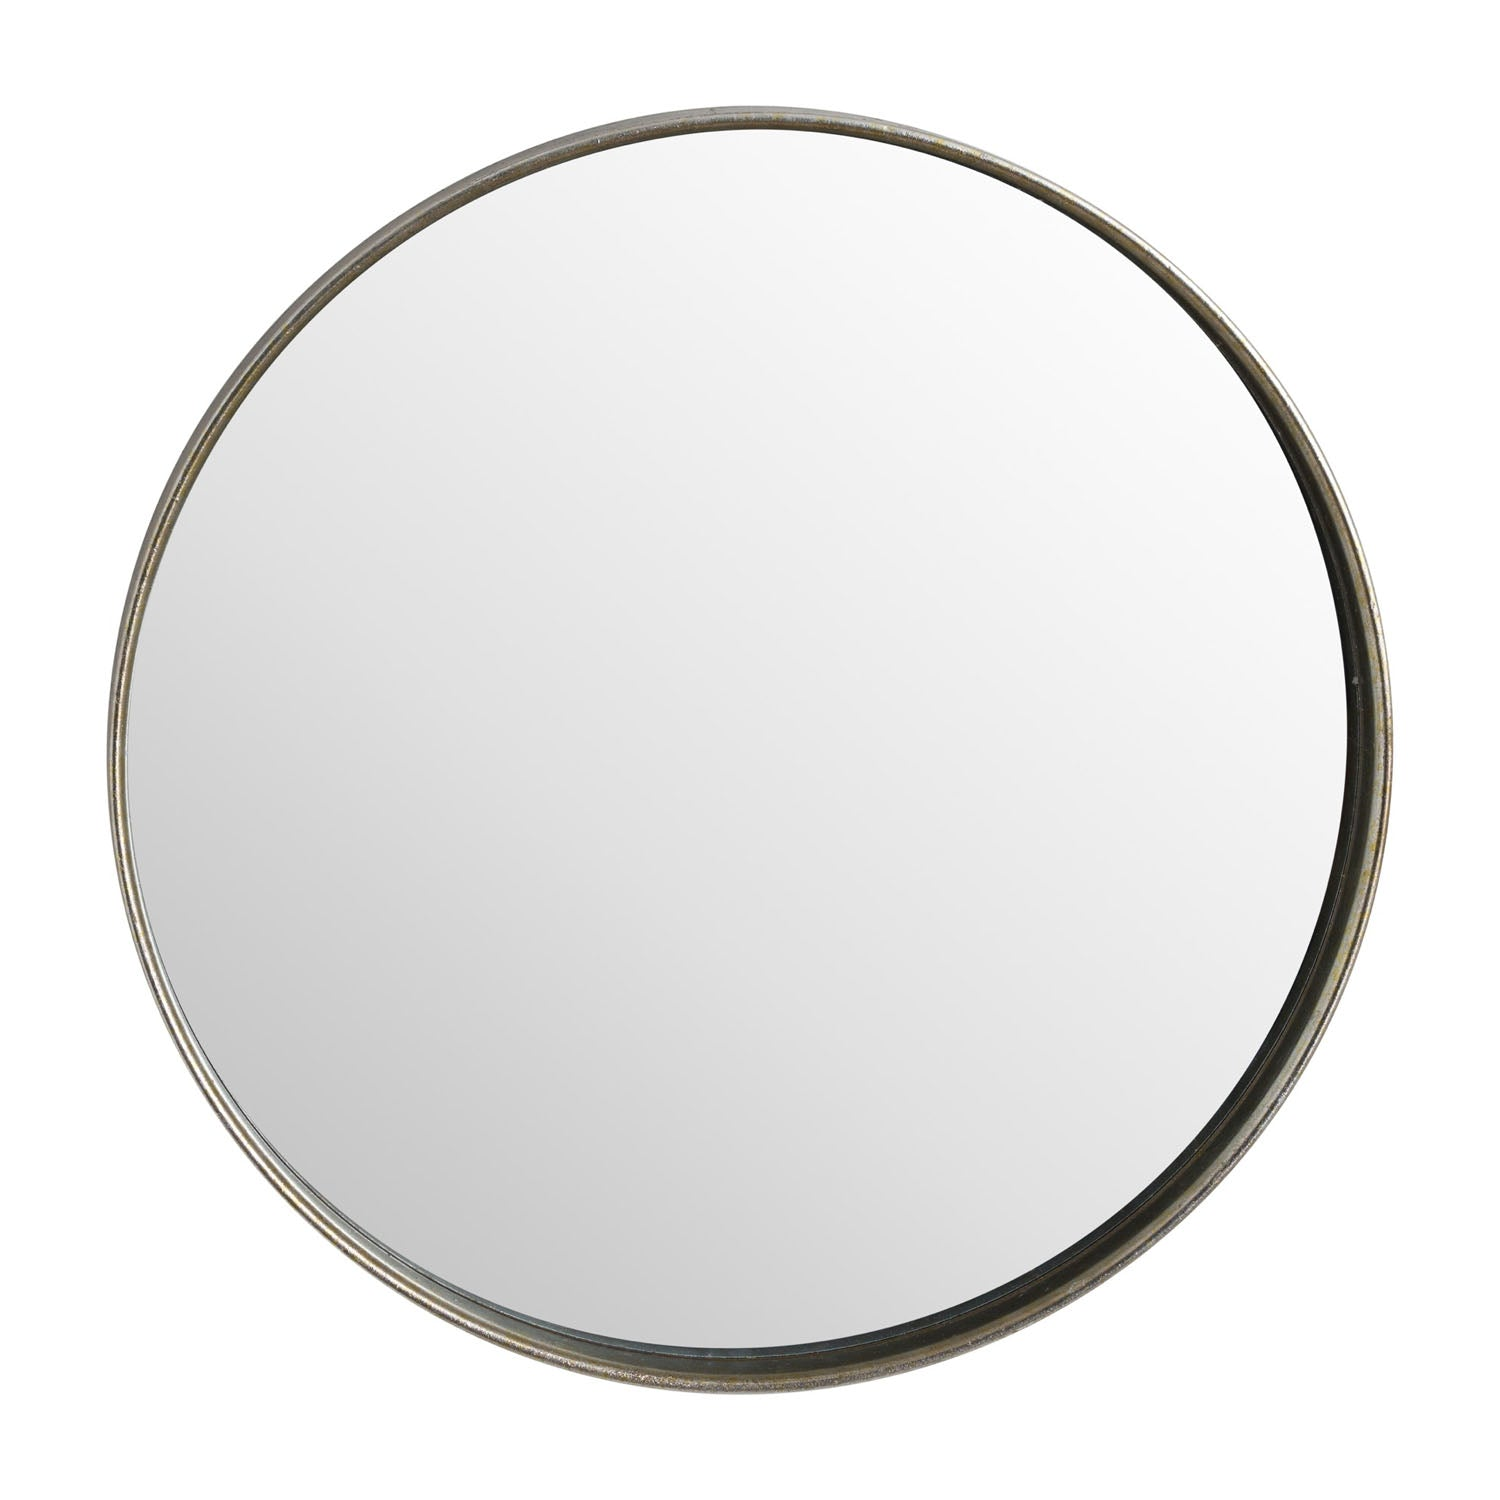 Large Bronze Narrow Edge Round Mirror